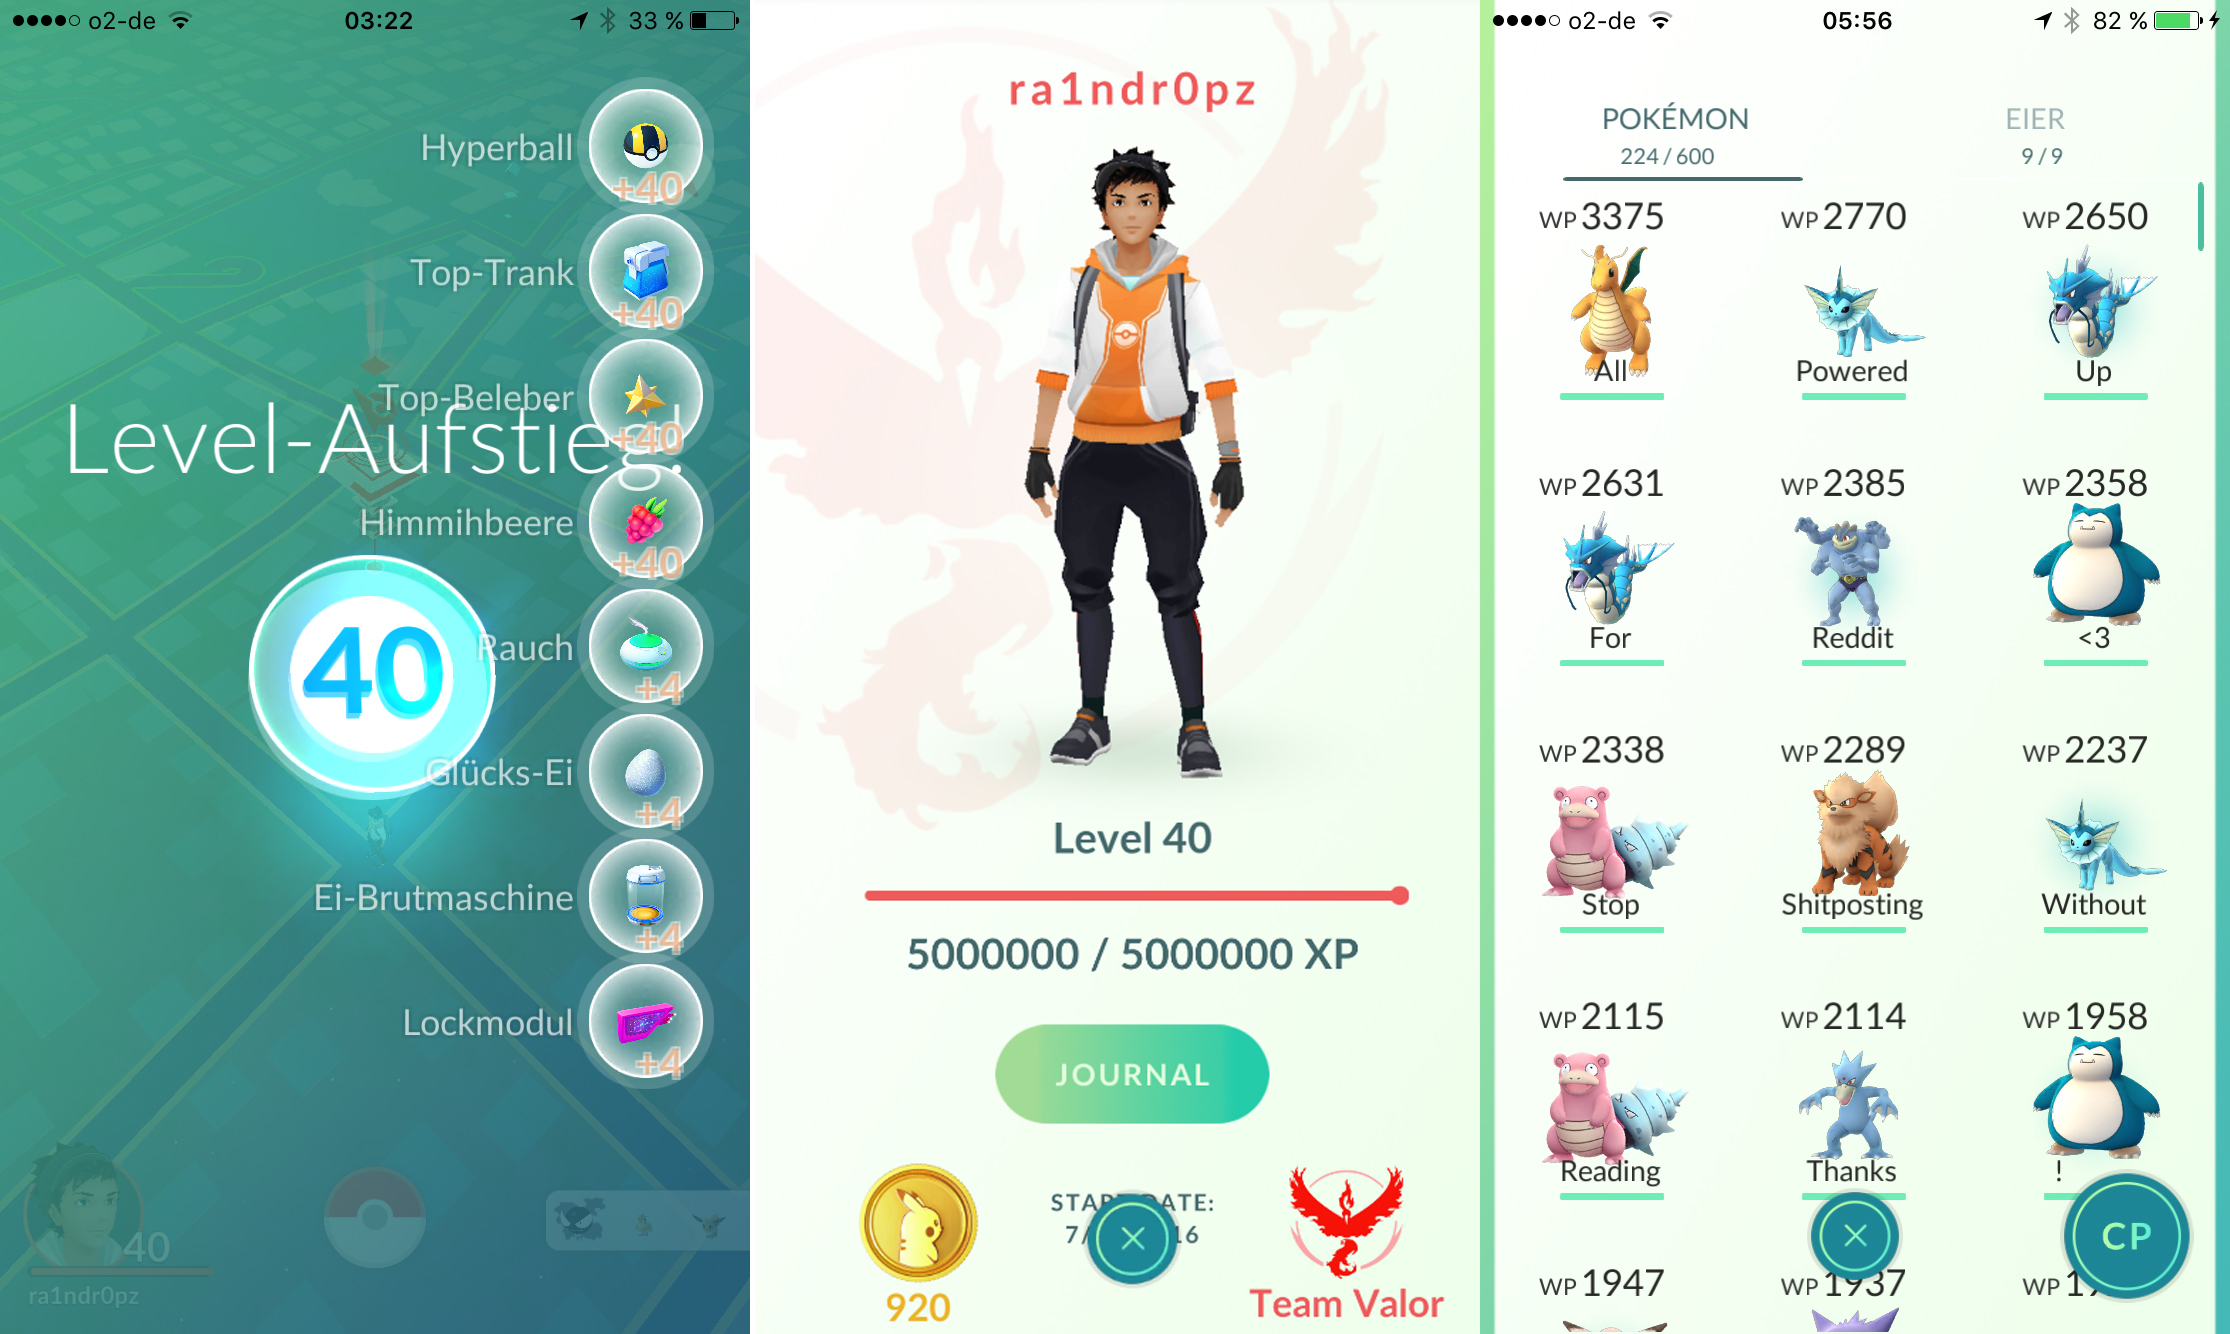 Pokémon Go Player Uses A Bot To Reach The Games Maximum Level - This pokmon go player is the first person to catch them all